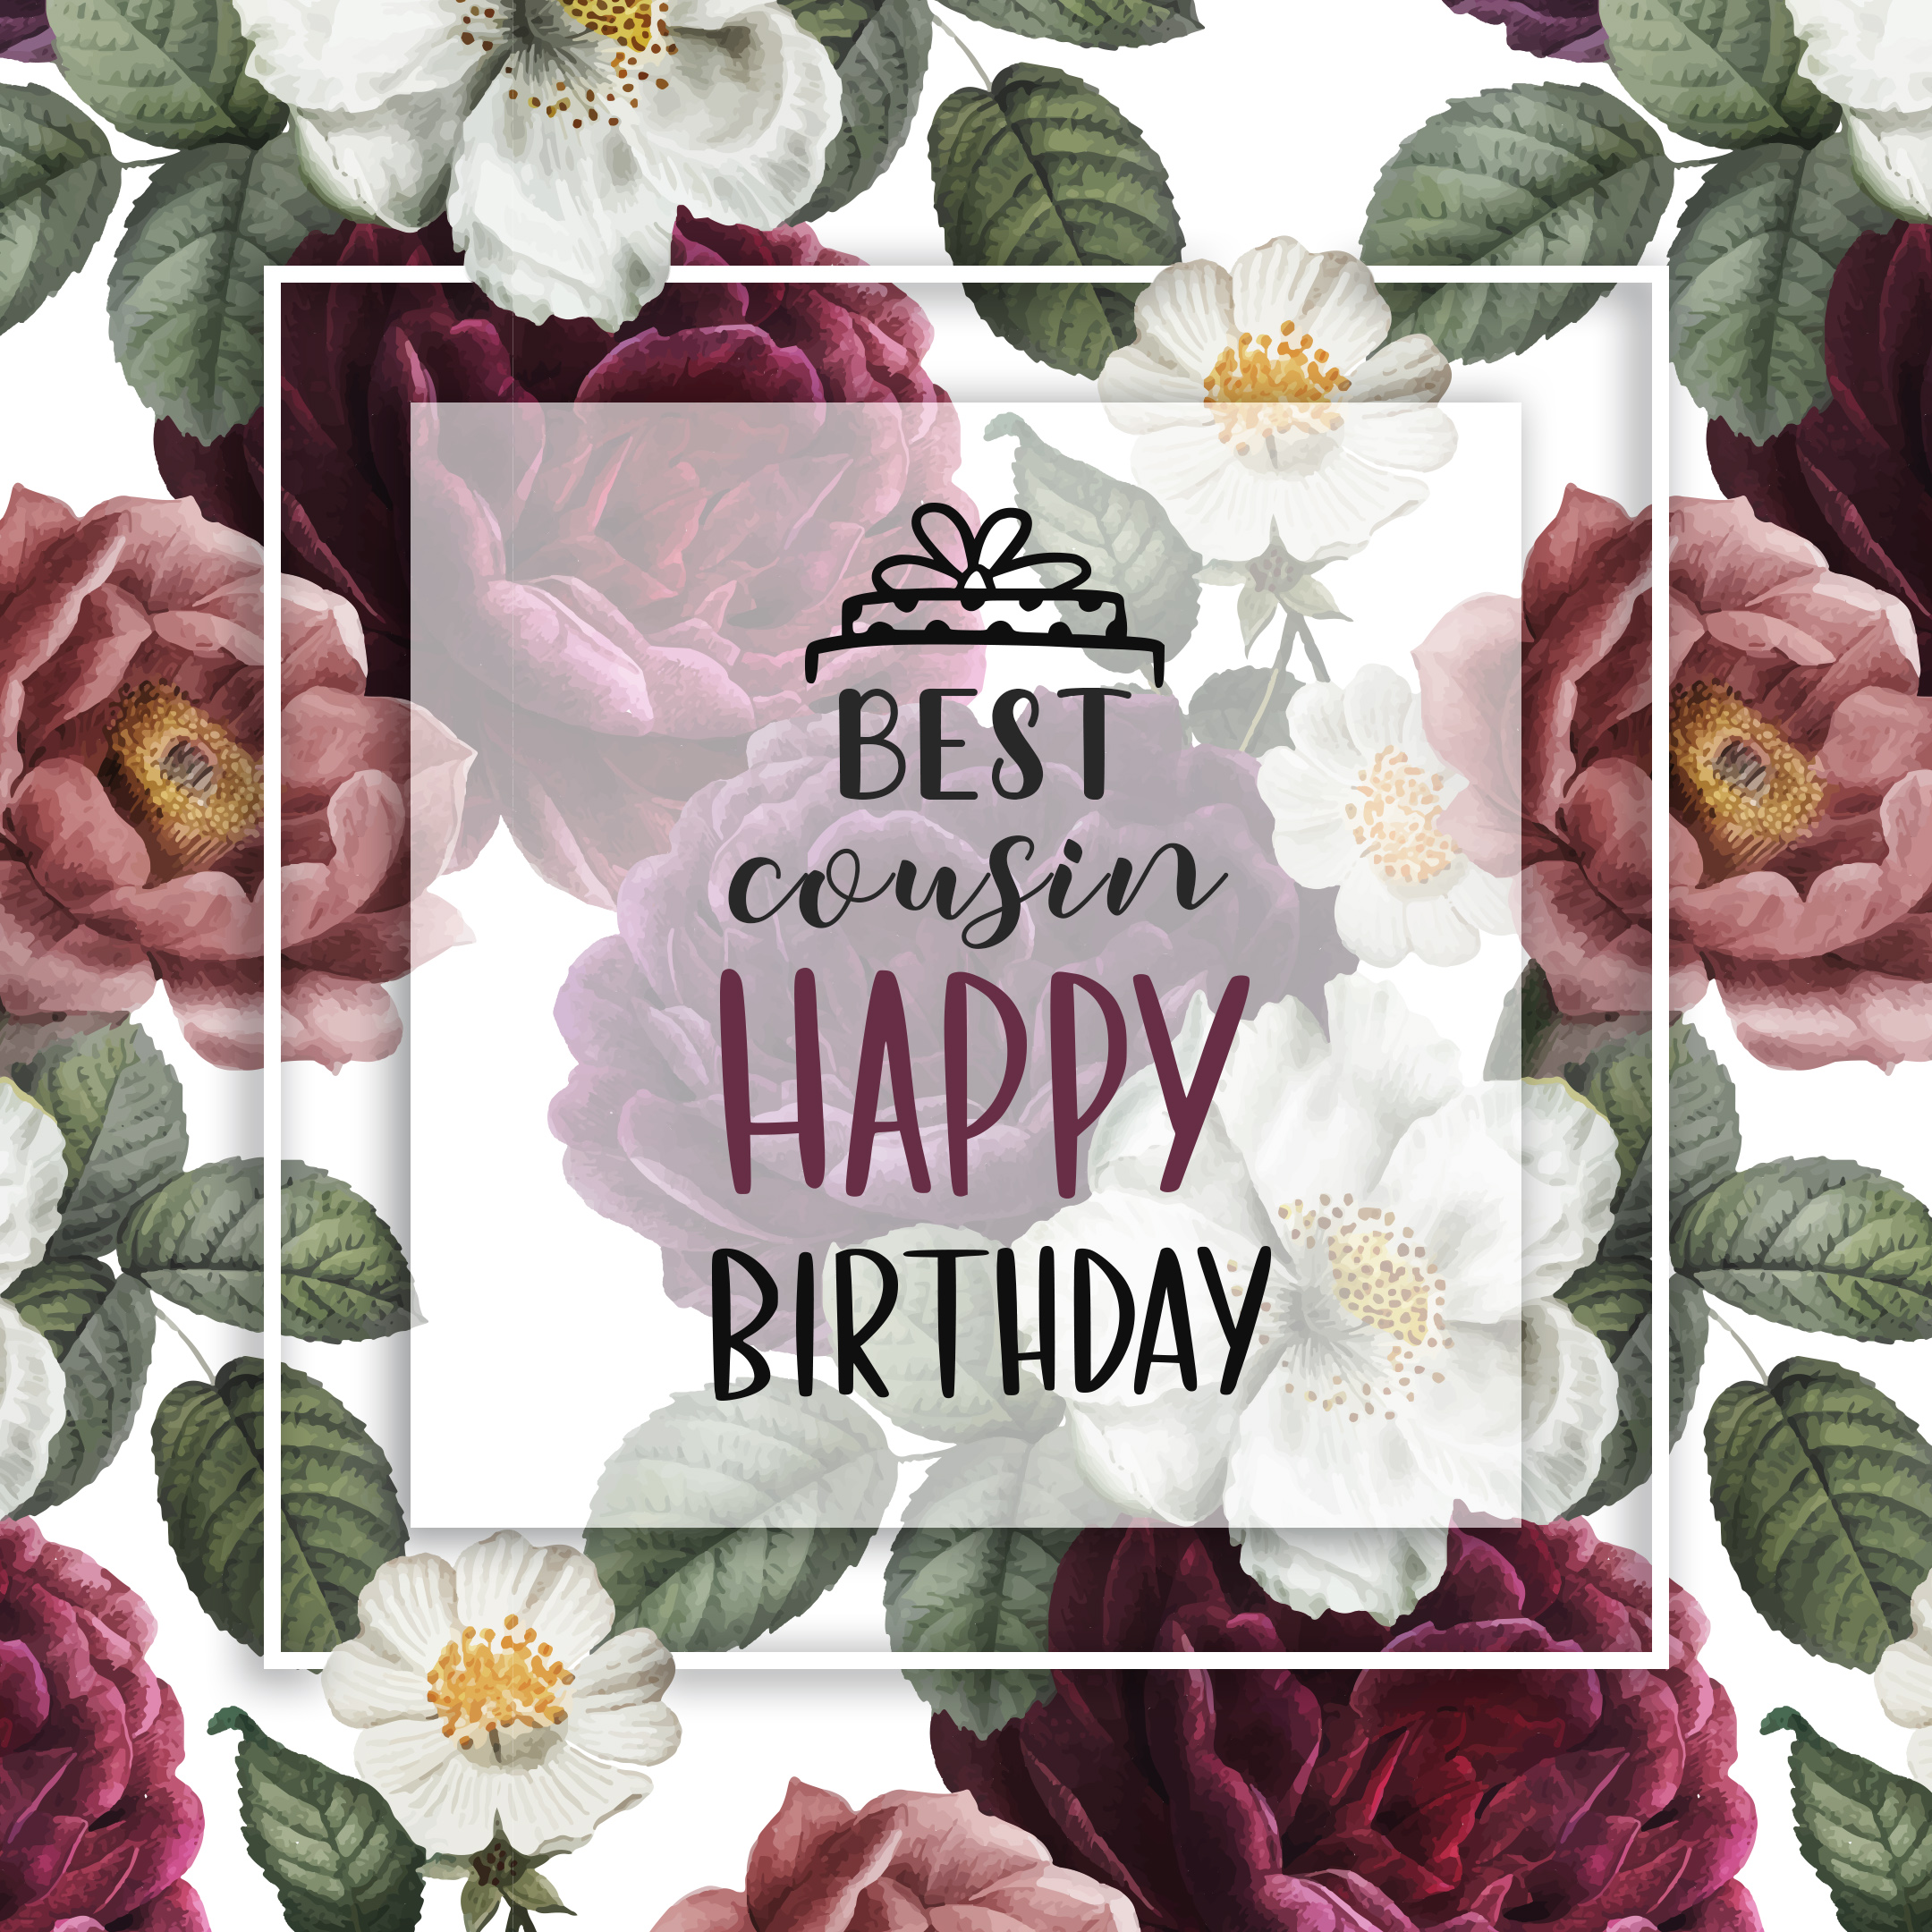 Free Happy Birthday Image For Cousin With Flowers - birthdayimg.com